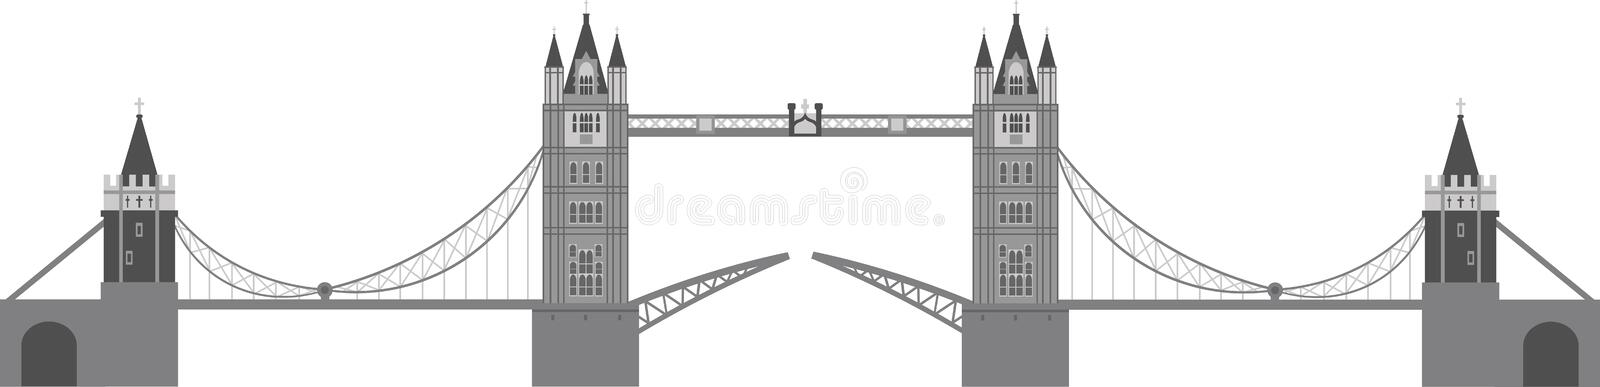 Download London Tower Bridge Illustration Stock Vector - Image: 24936499